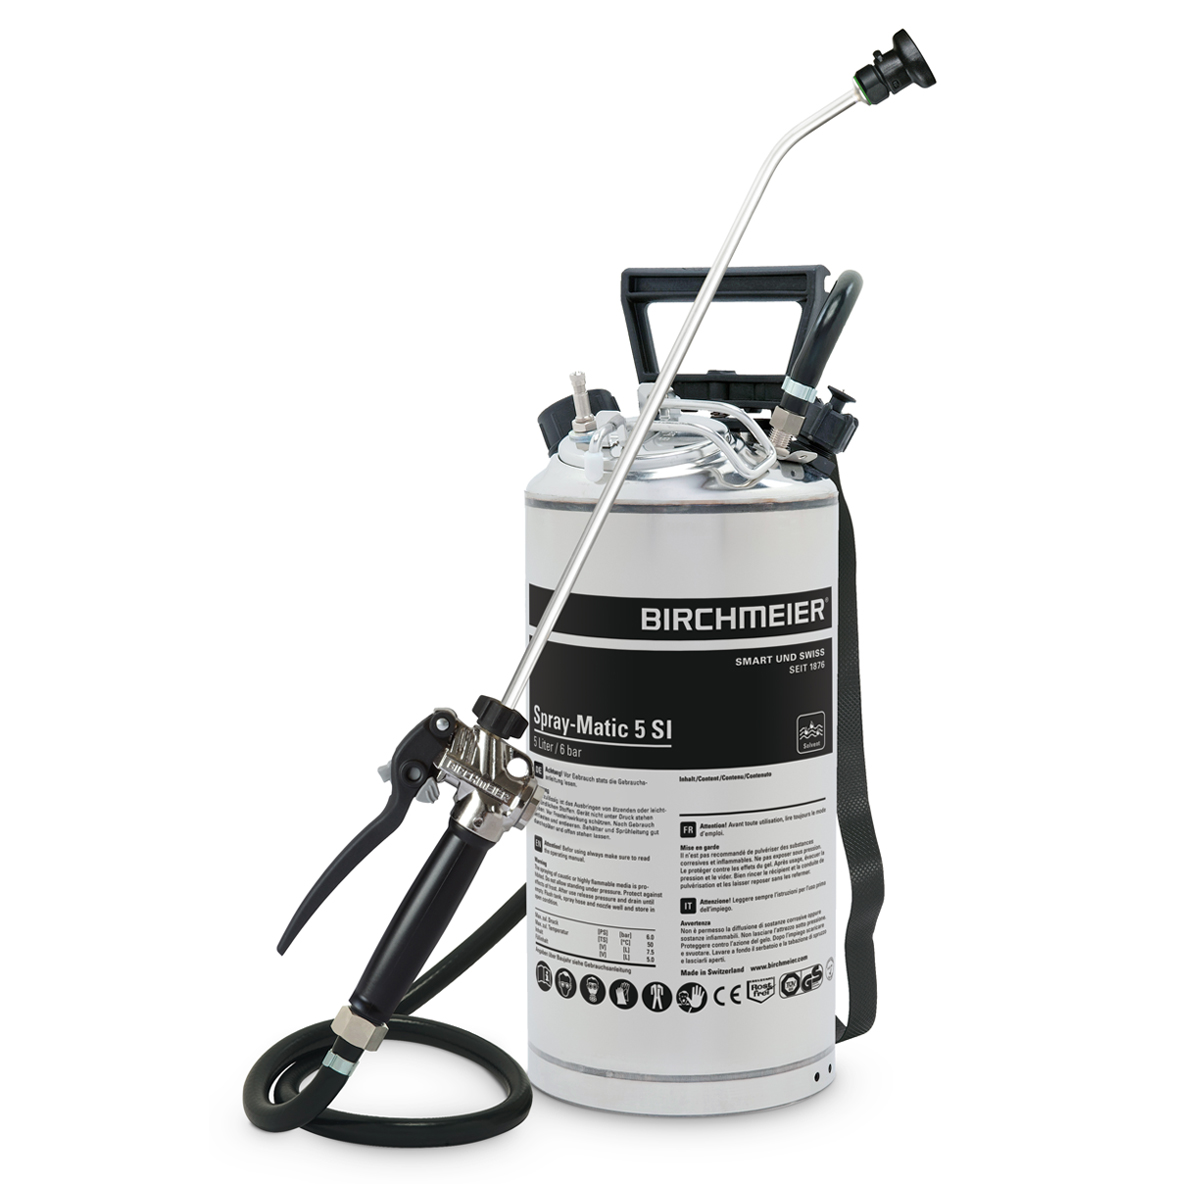 Spray-Matic 5 SI with stainless steel hand pump and compressed-air union